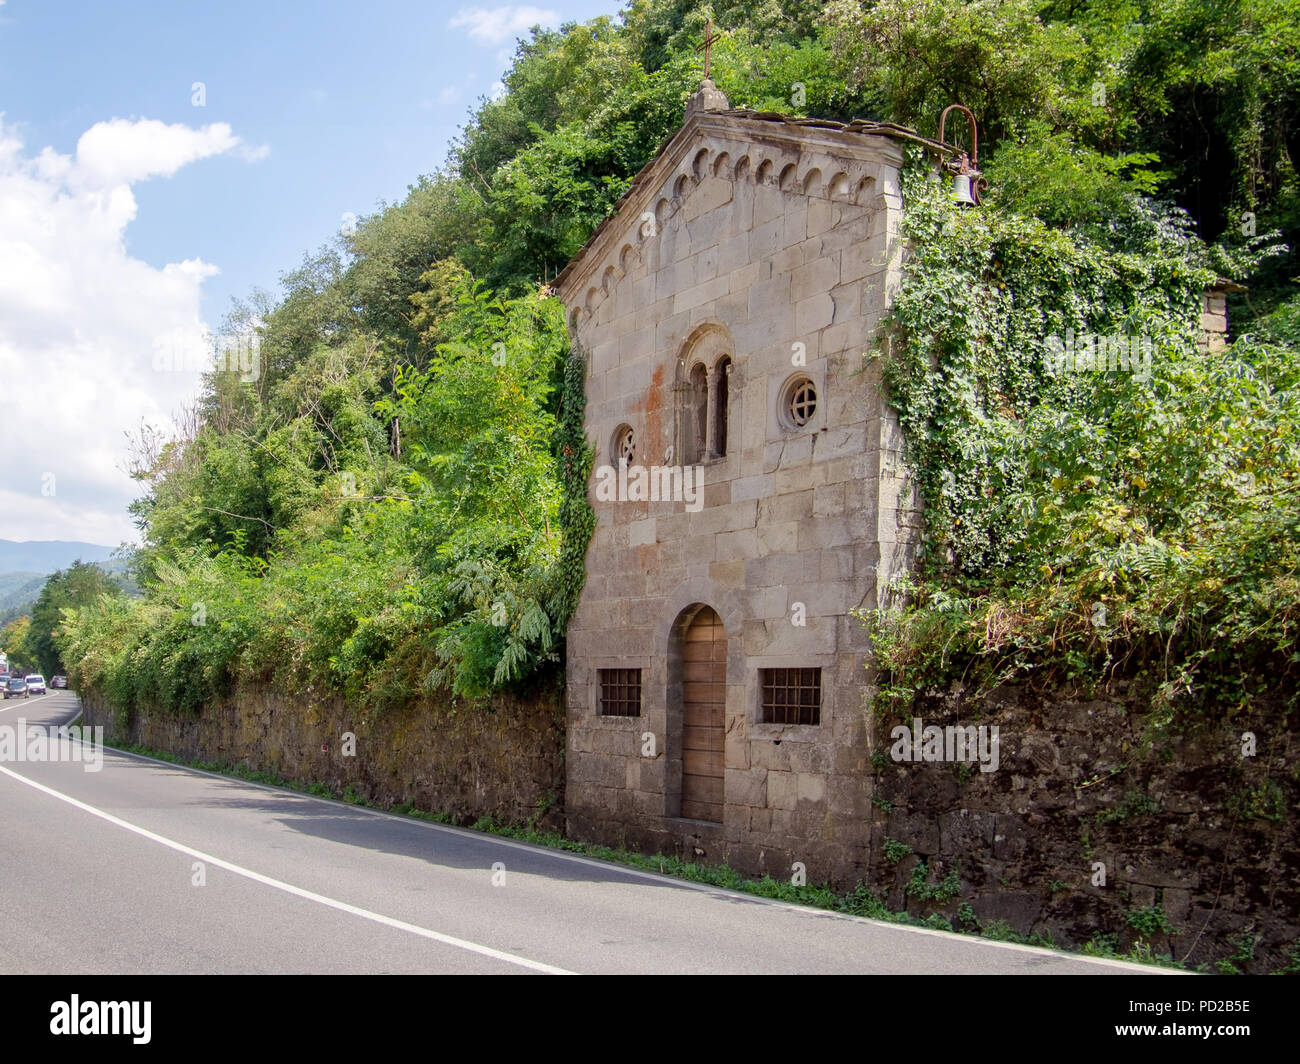 Ancient small Catholic church, closed, neglected and overgrown. Lunigiana, Italy. - Stock Image